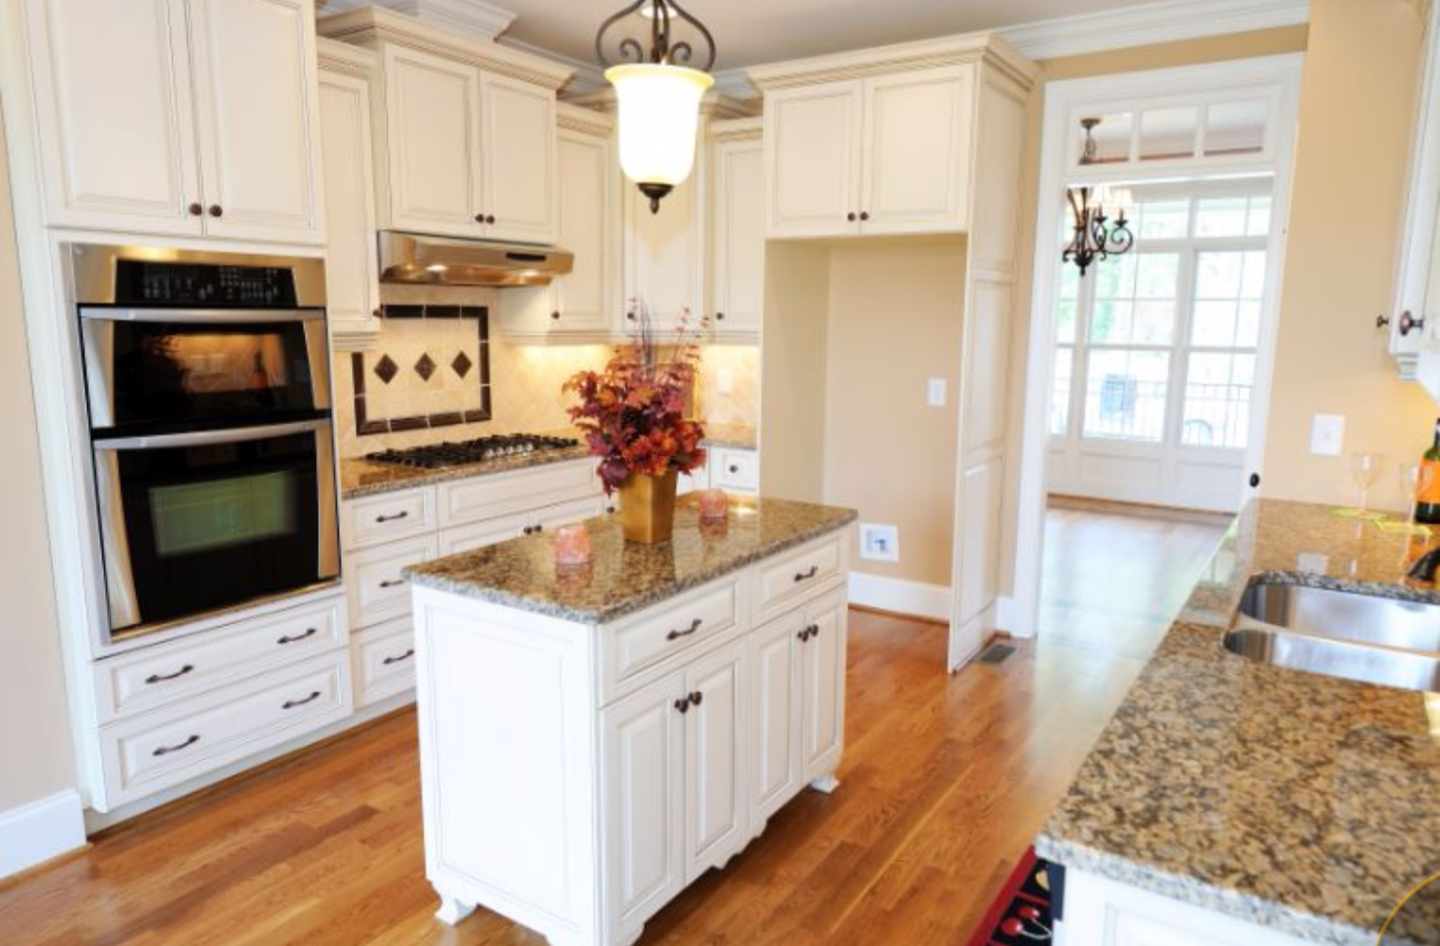 Genial Painting Kitchen Cabinets And Cabinet Refinishing Denver